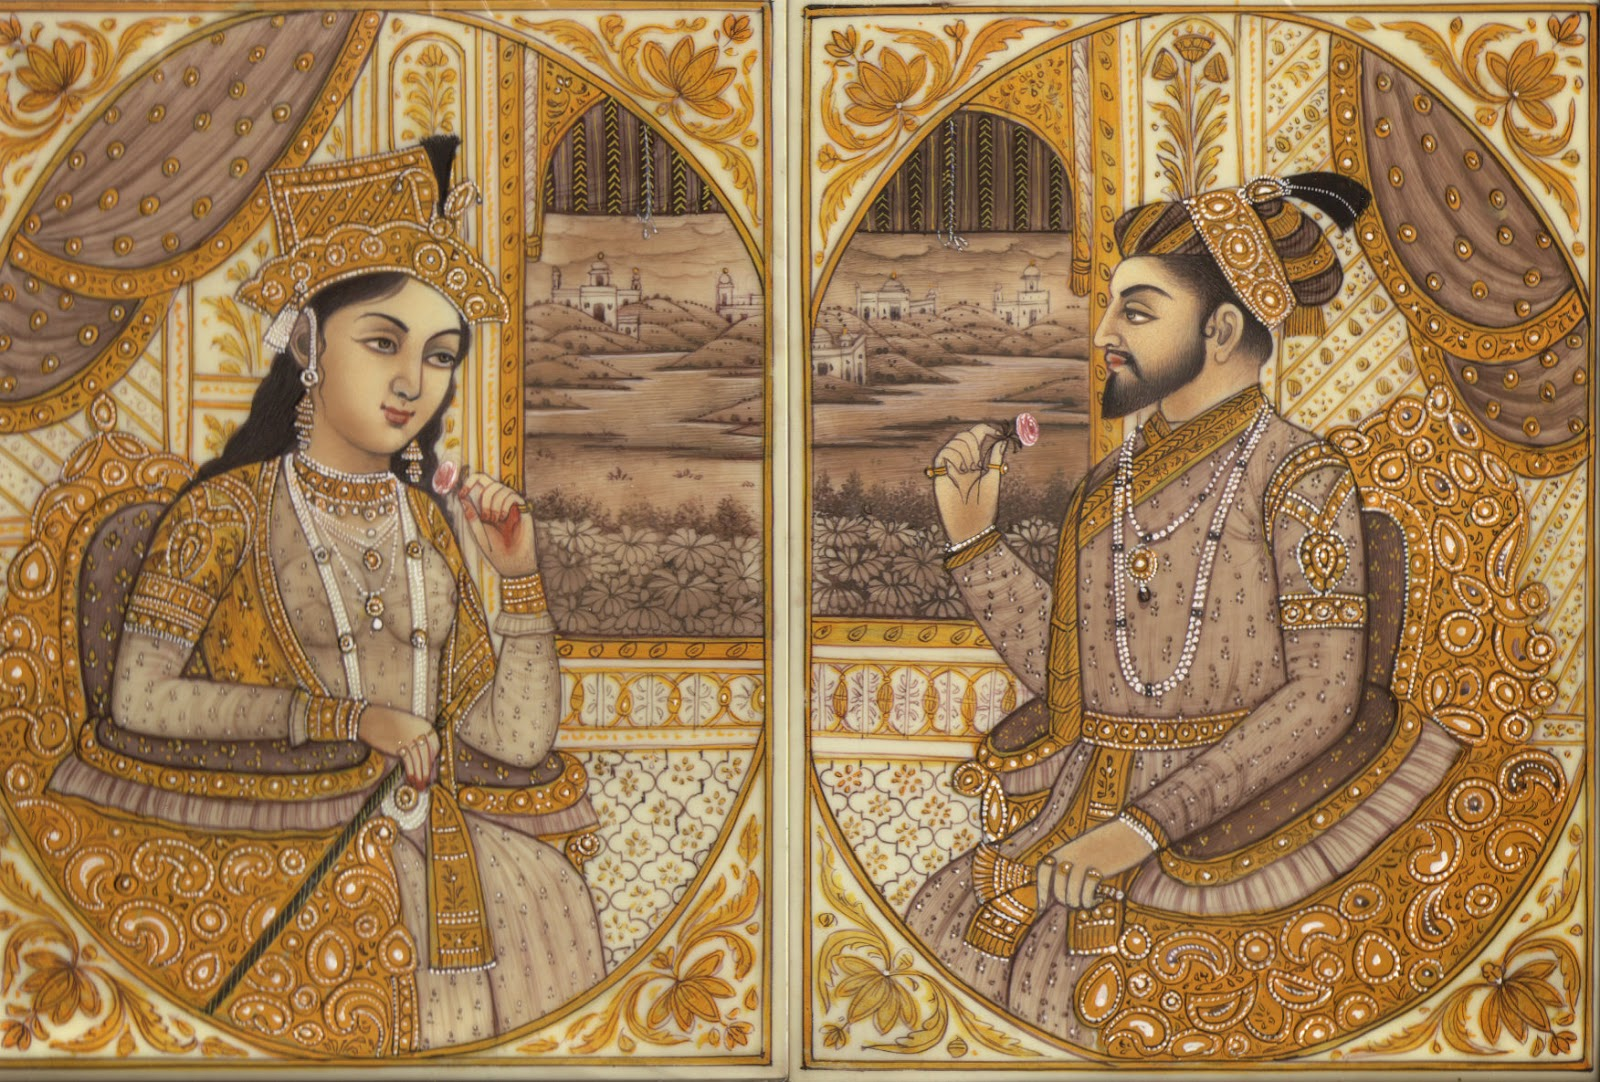 shah-jahan-mumtaz-taj-mahal-the-true-story